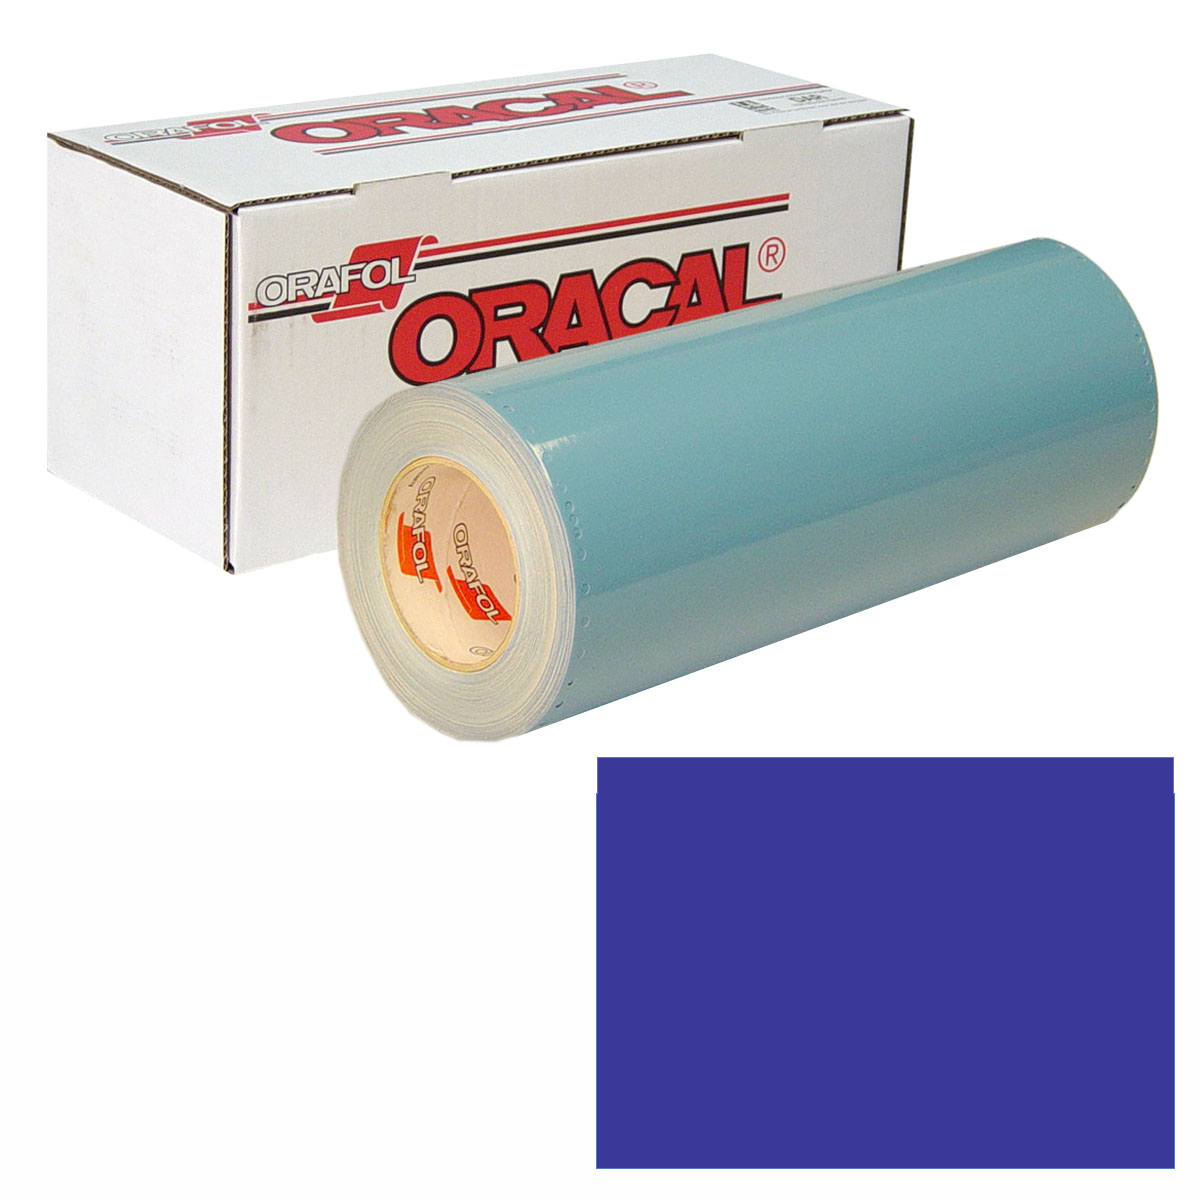 ORACAL 751 Unp 24In X 10Yd 403 Light Violet